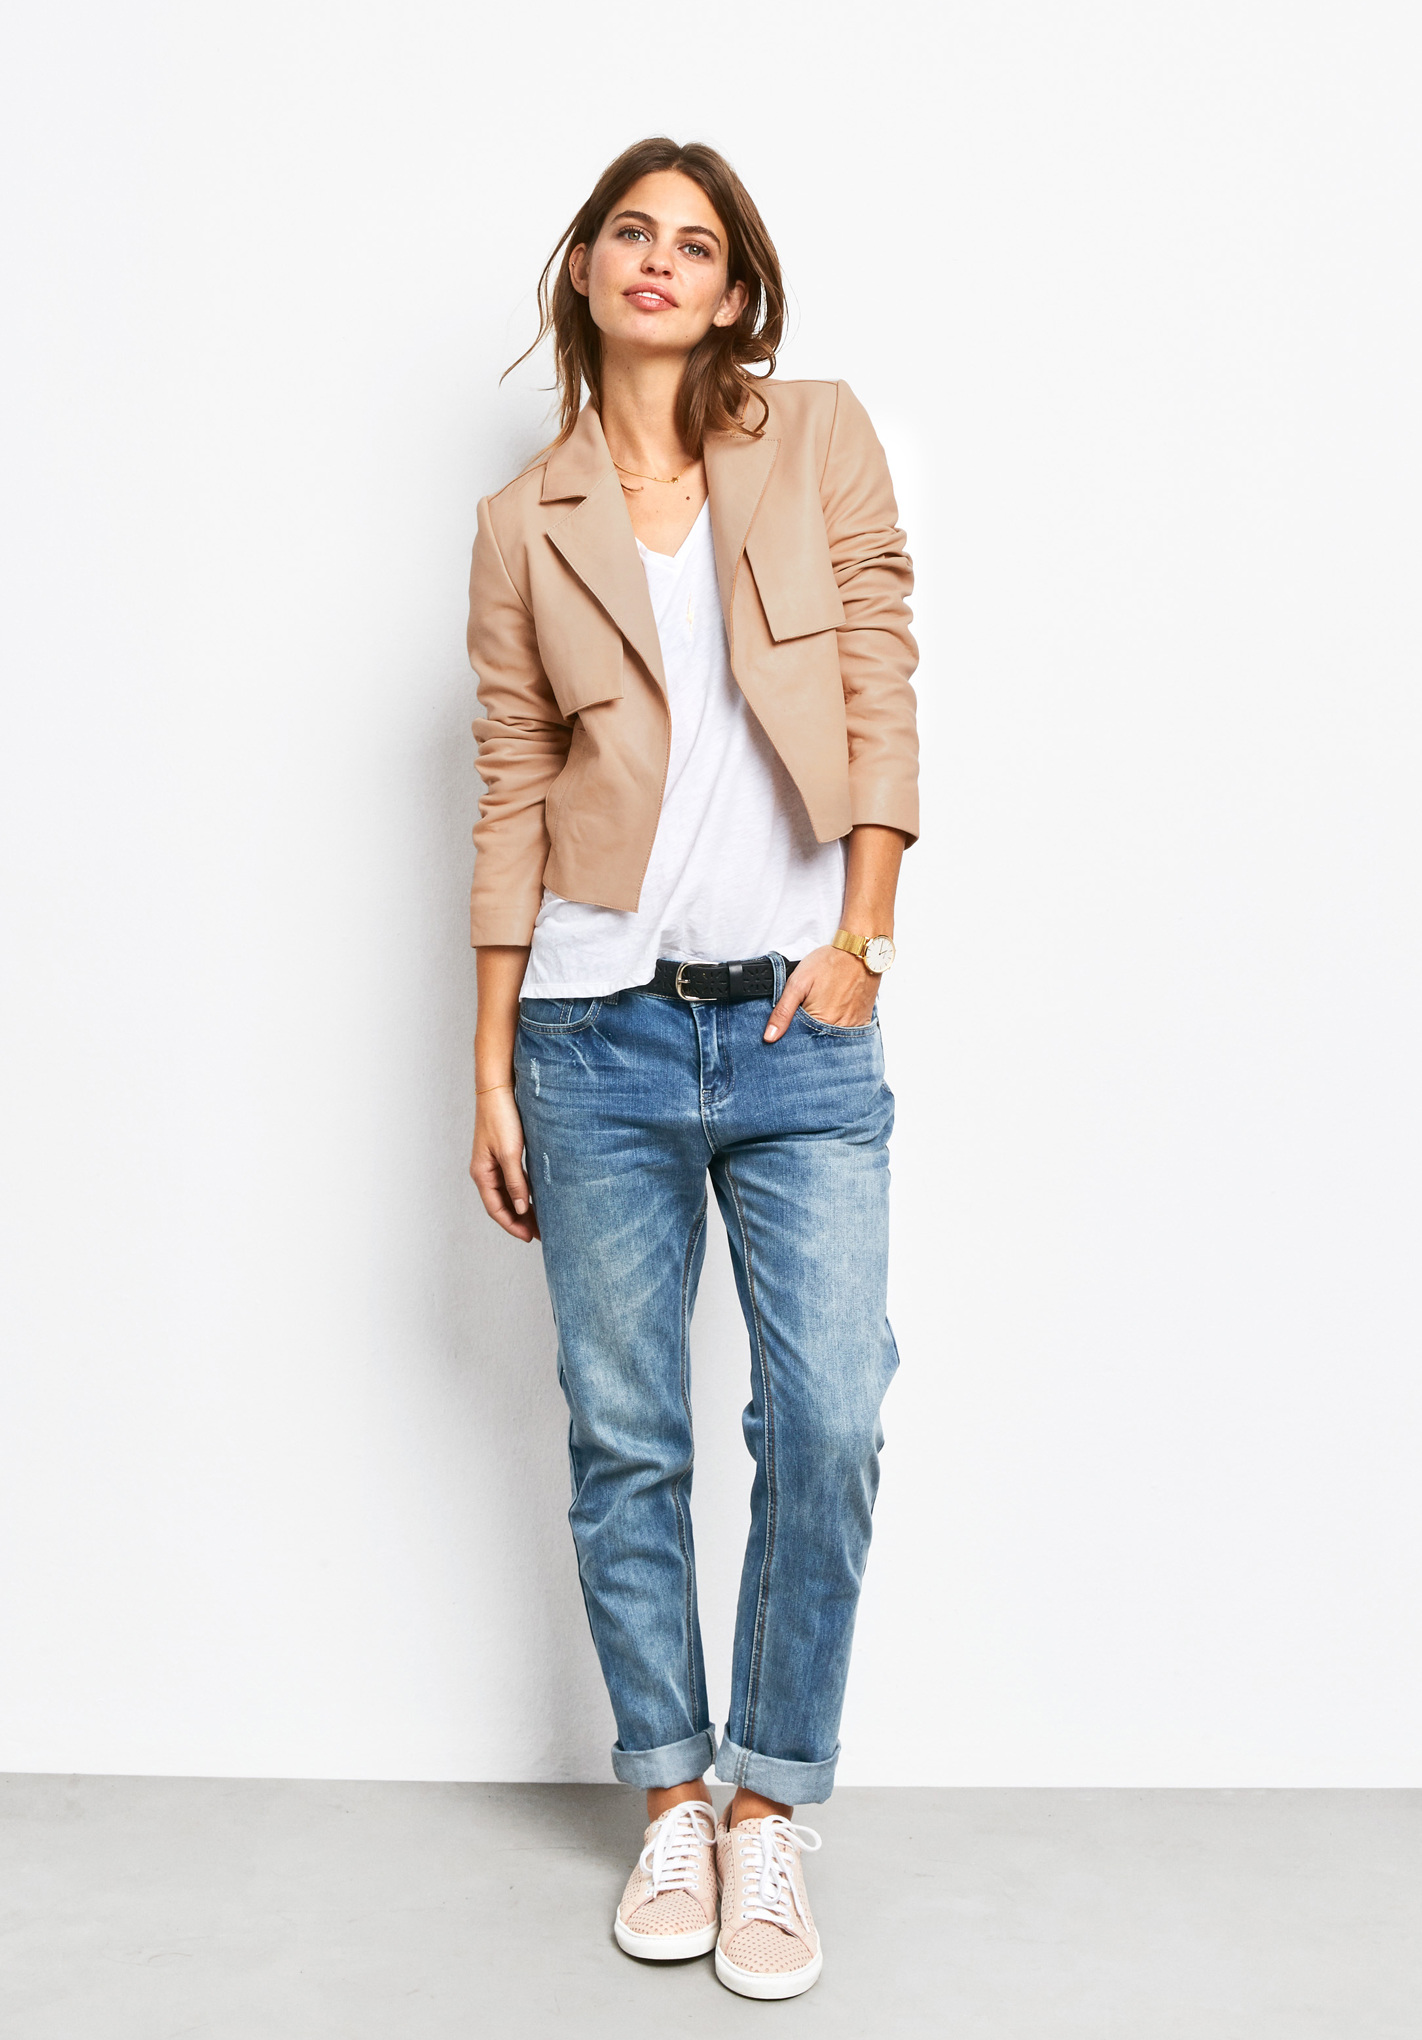 Women's boyfriend jeans are perfect to wear with high heels, chunky heels, athletic.